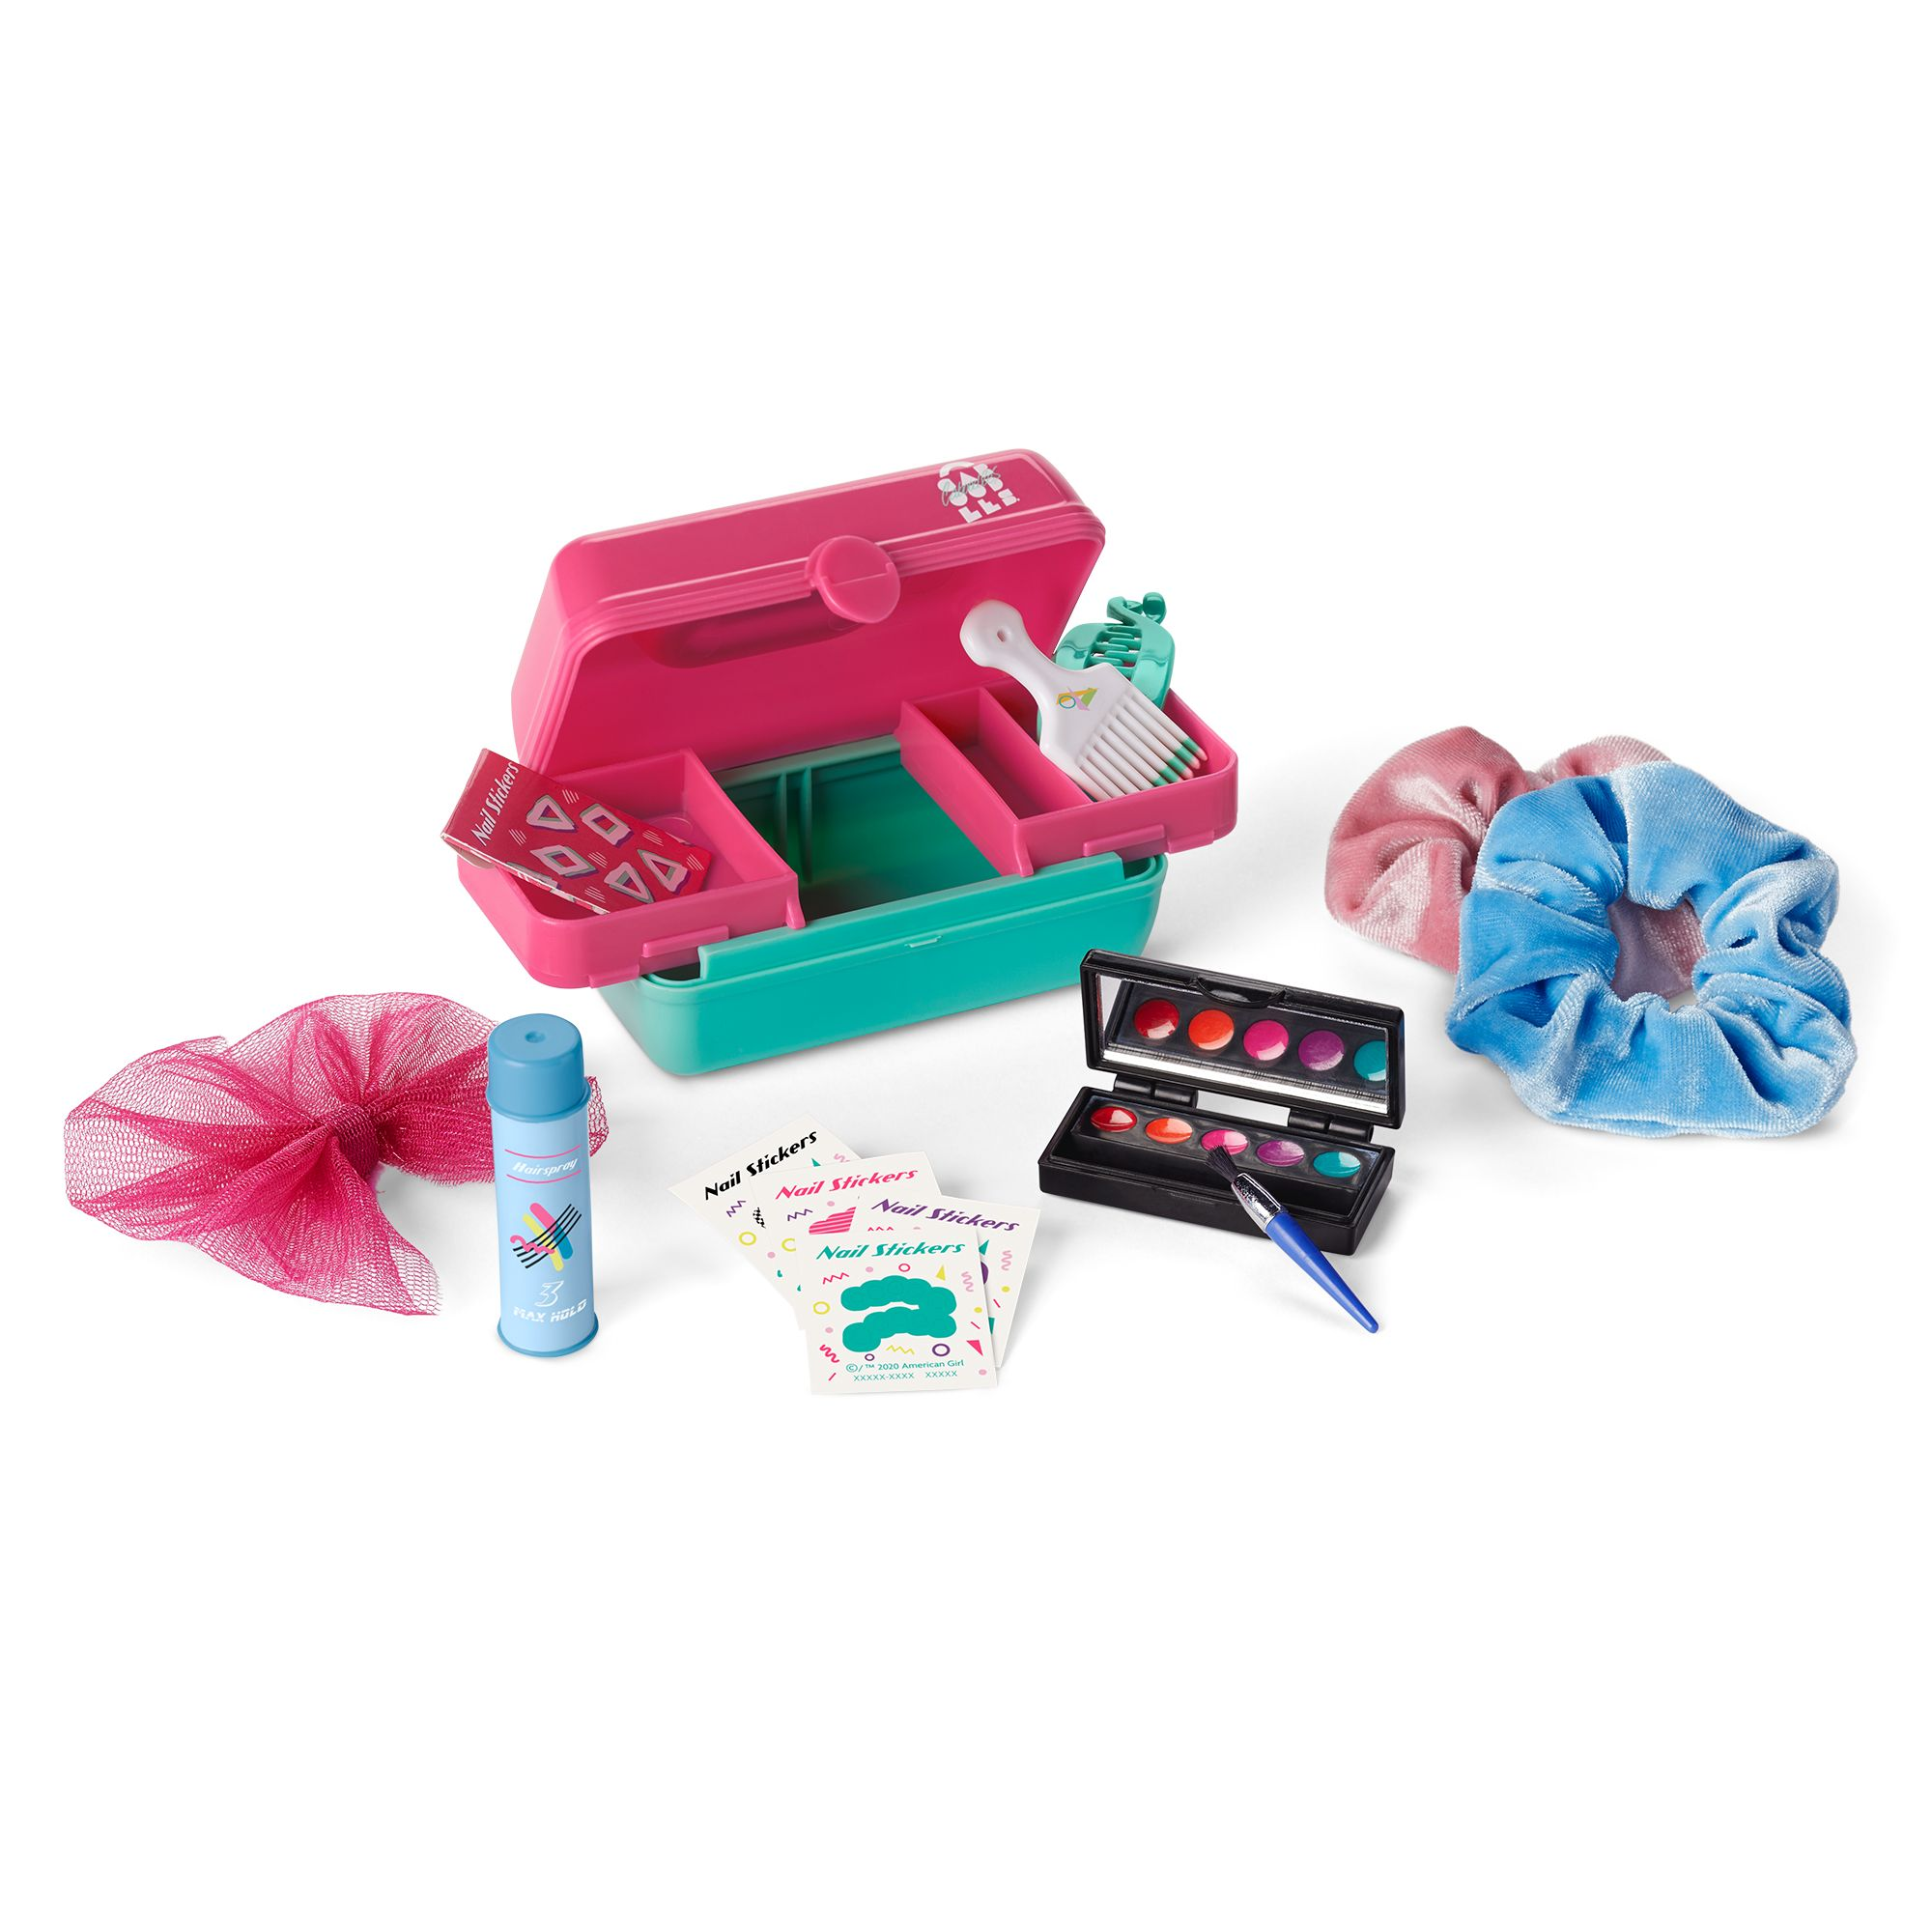 Courtney's Caboodles and Hair Accessories Kit